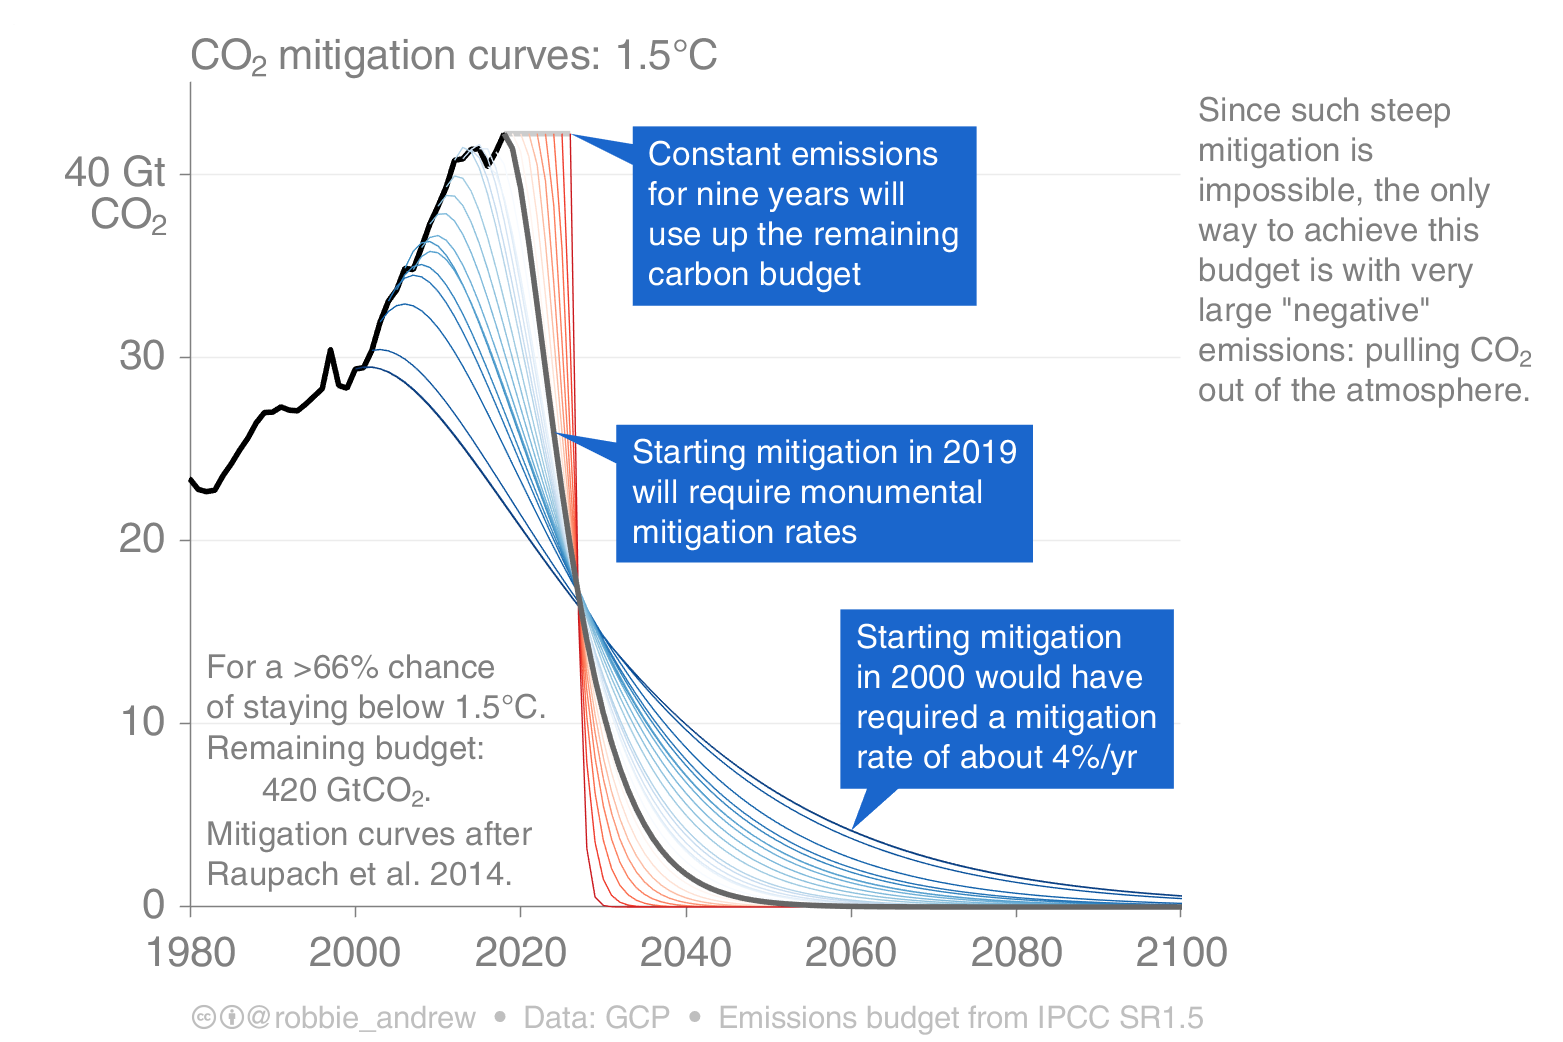 CO2 mitigation curves 1.5C from Robbie Andrew